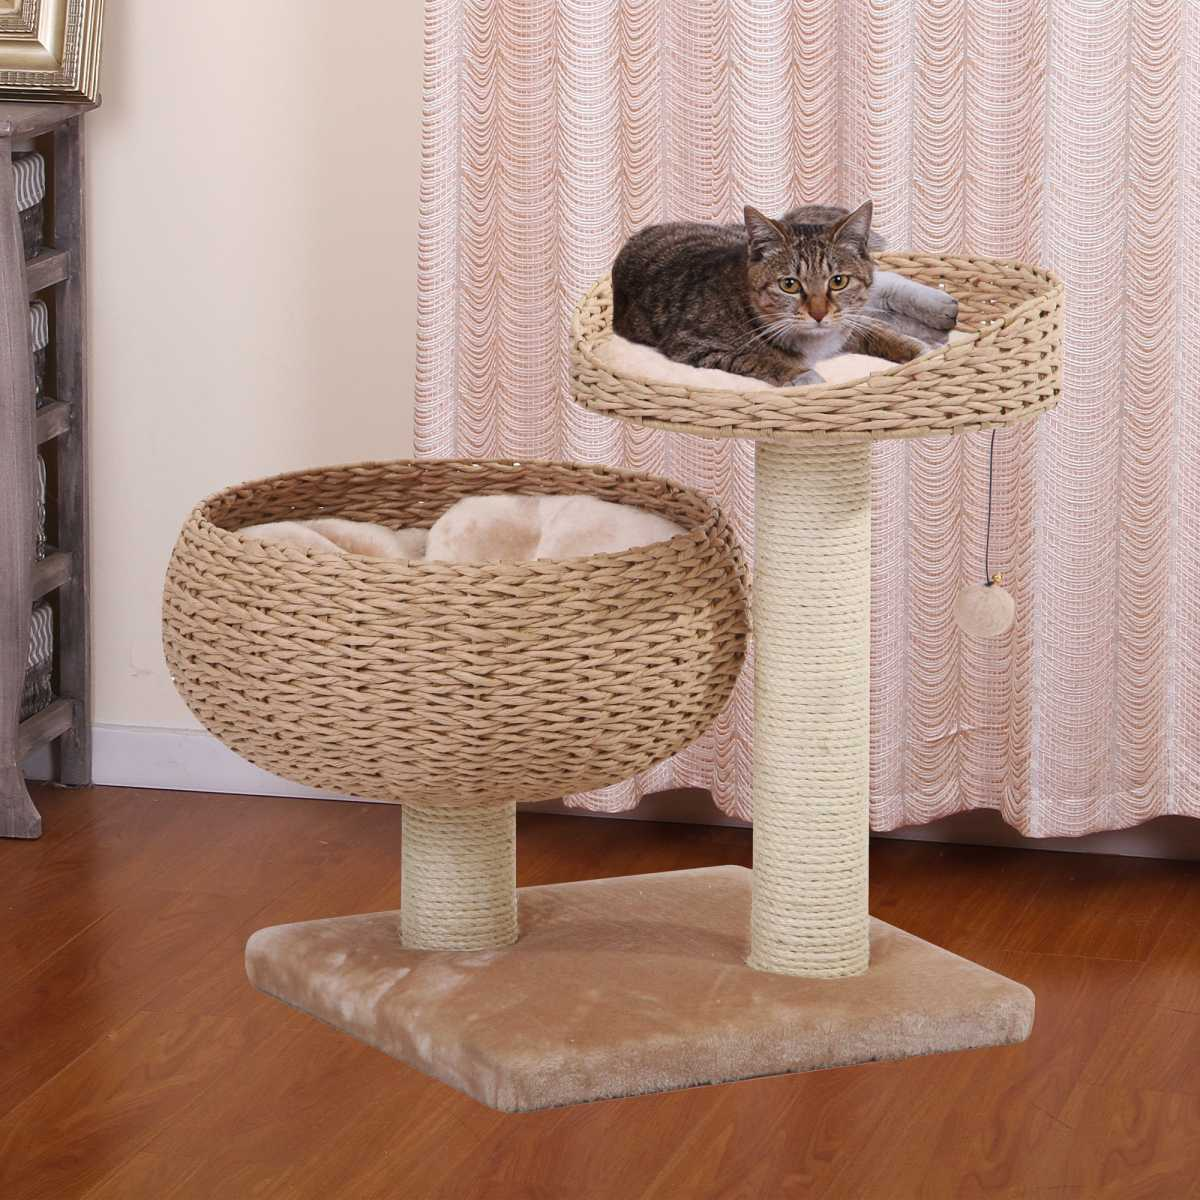 cozy cat tree with woven baskets